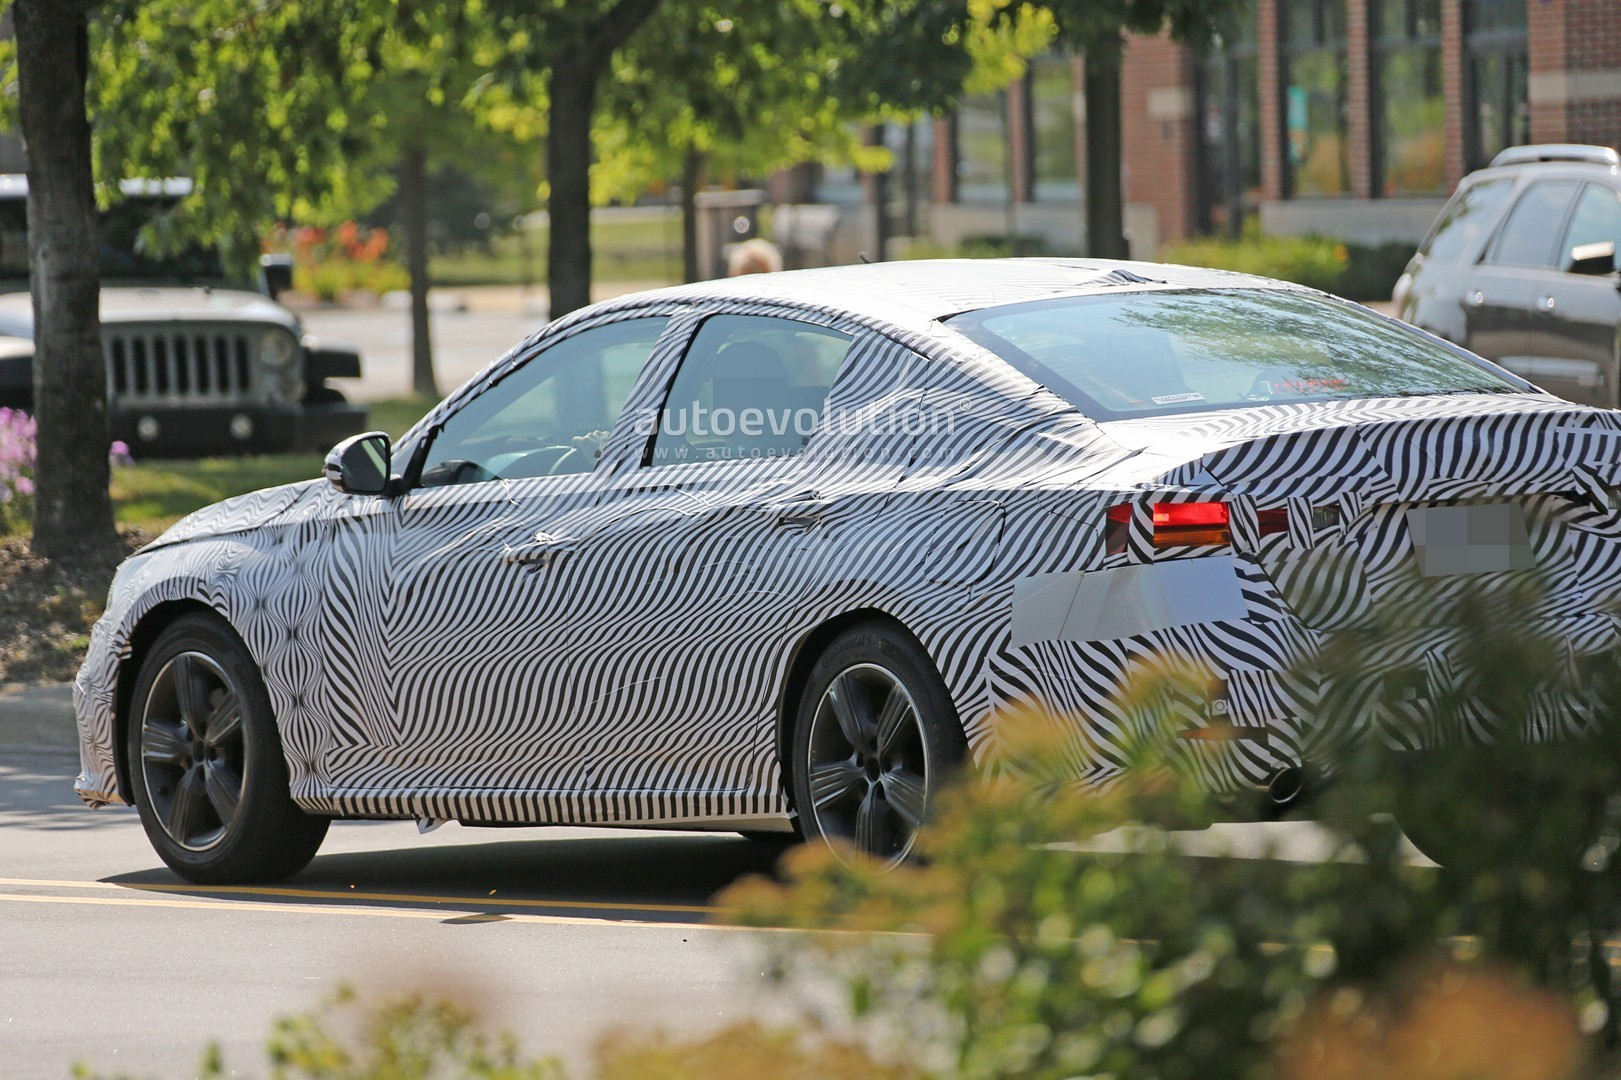 spyshots  2019 nissan altima shows interior  model targets the accord and camry